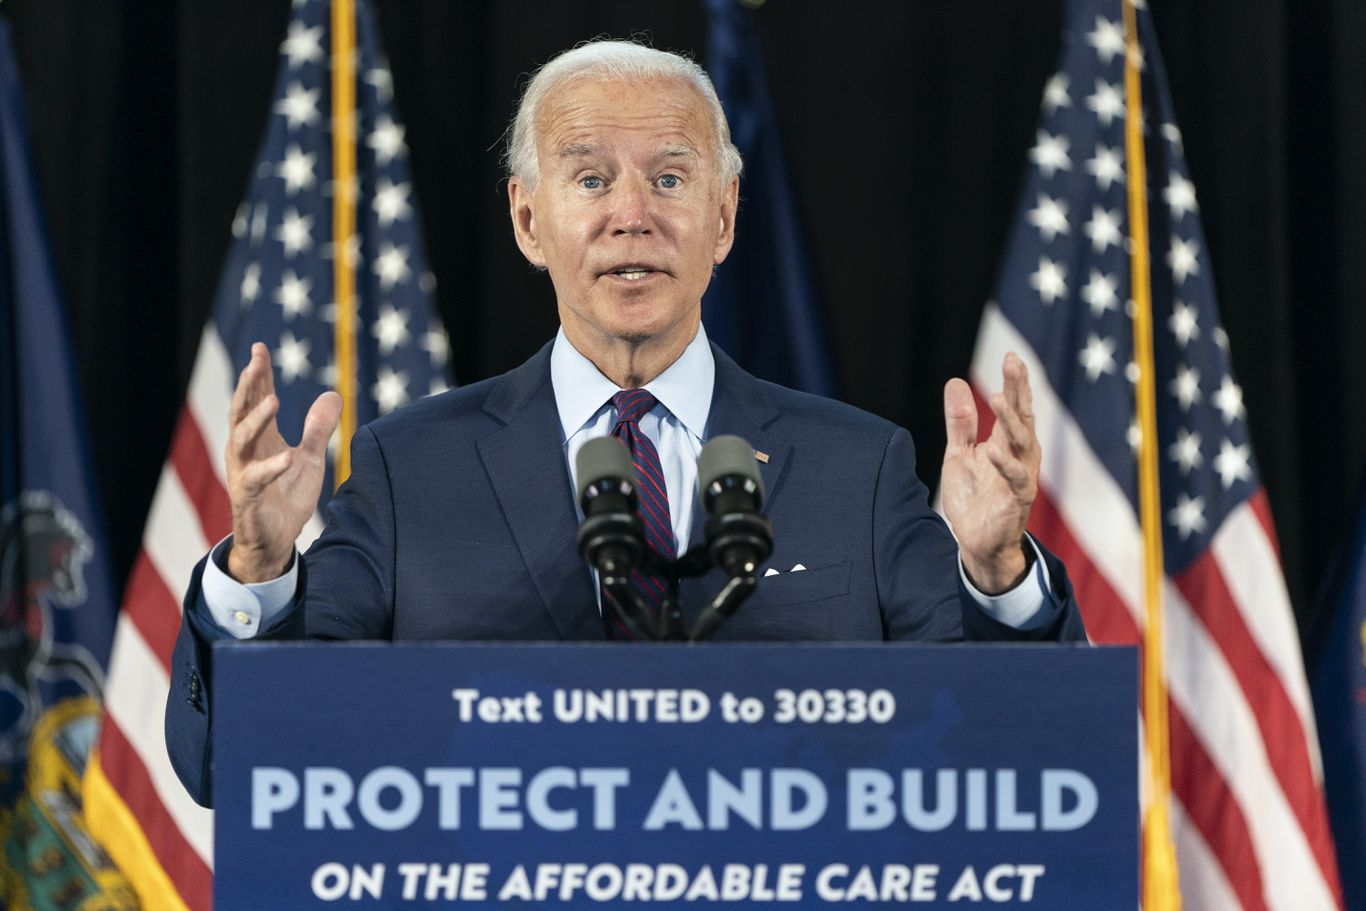 """Biden says Trump has """"cozied up"""" to Putin, requires """"extra knowledge"""" on Russian bounty allegations thumbnail"""